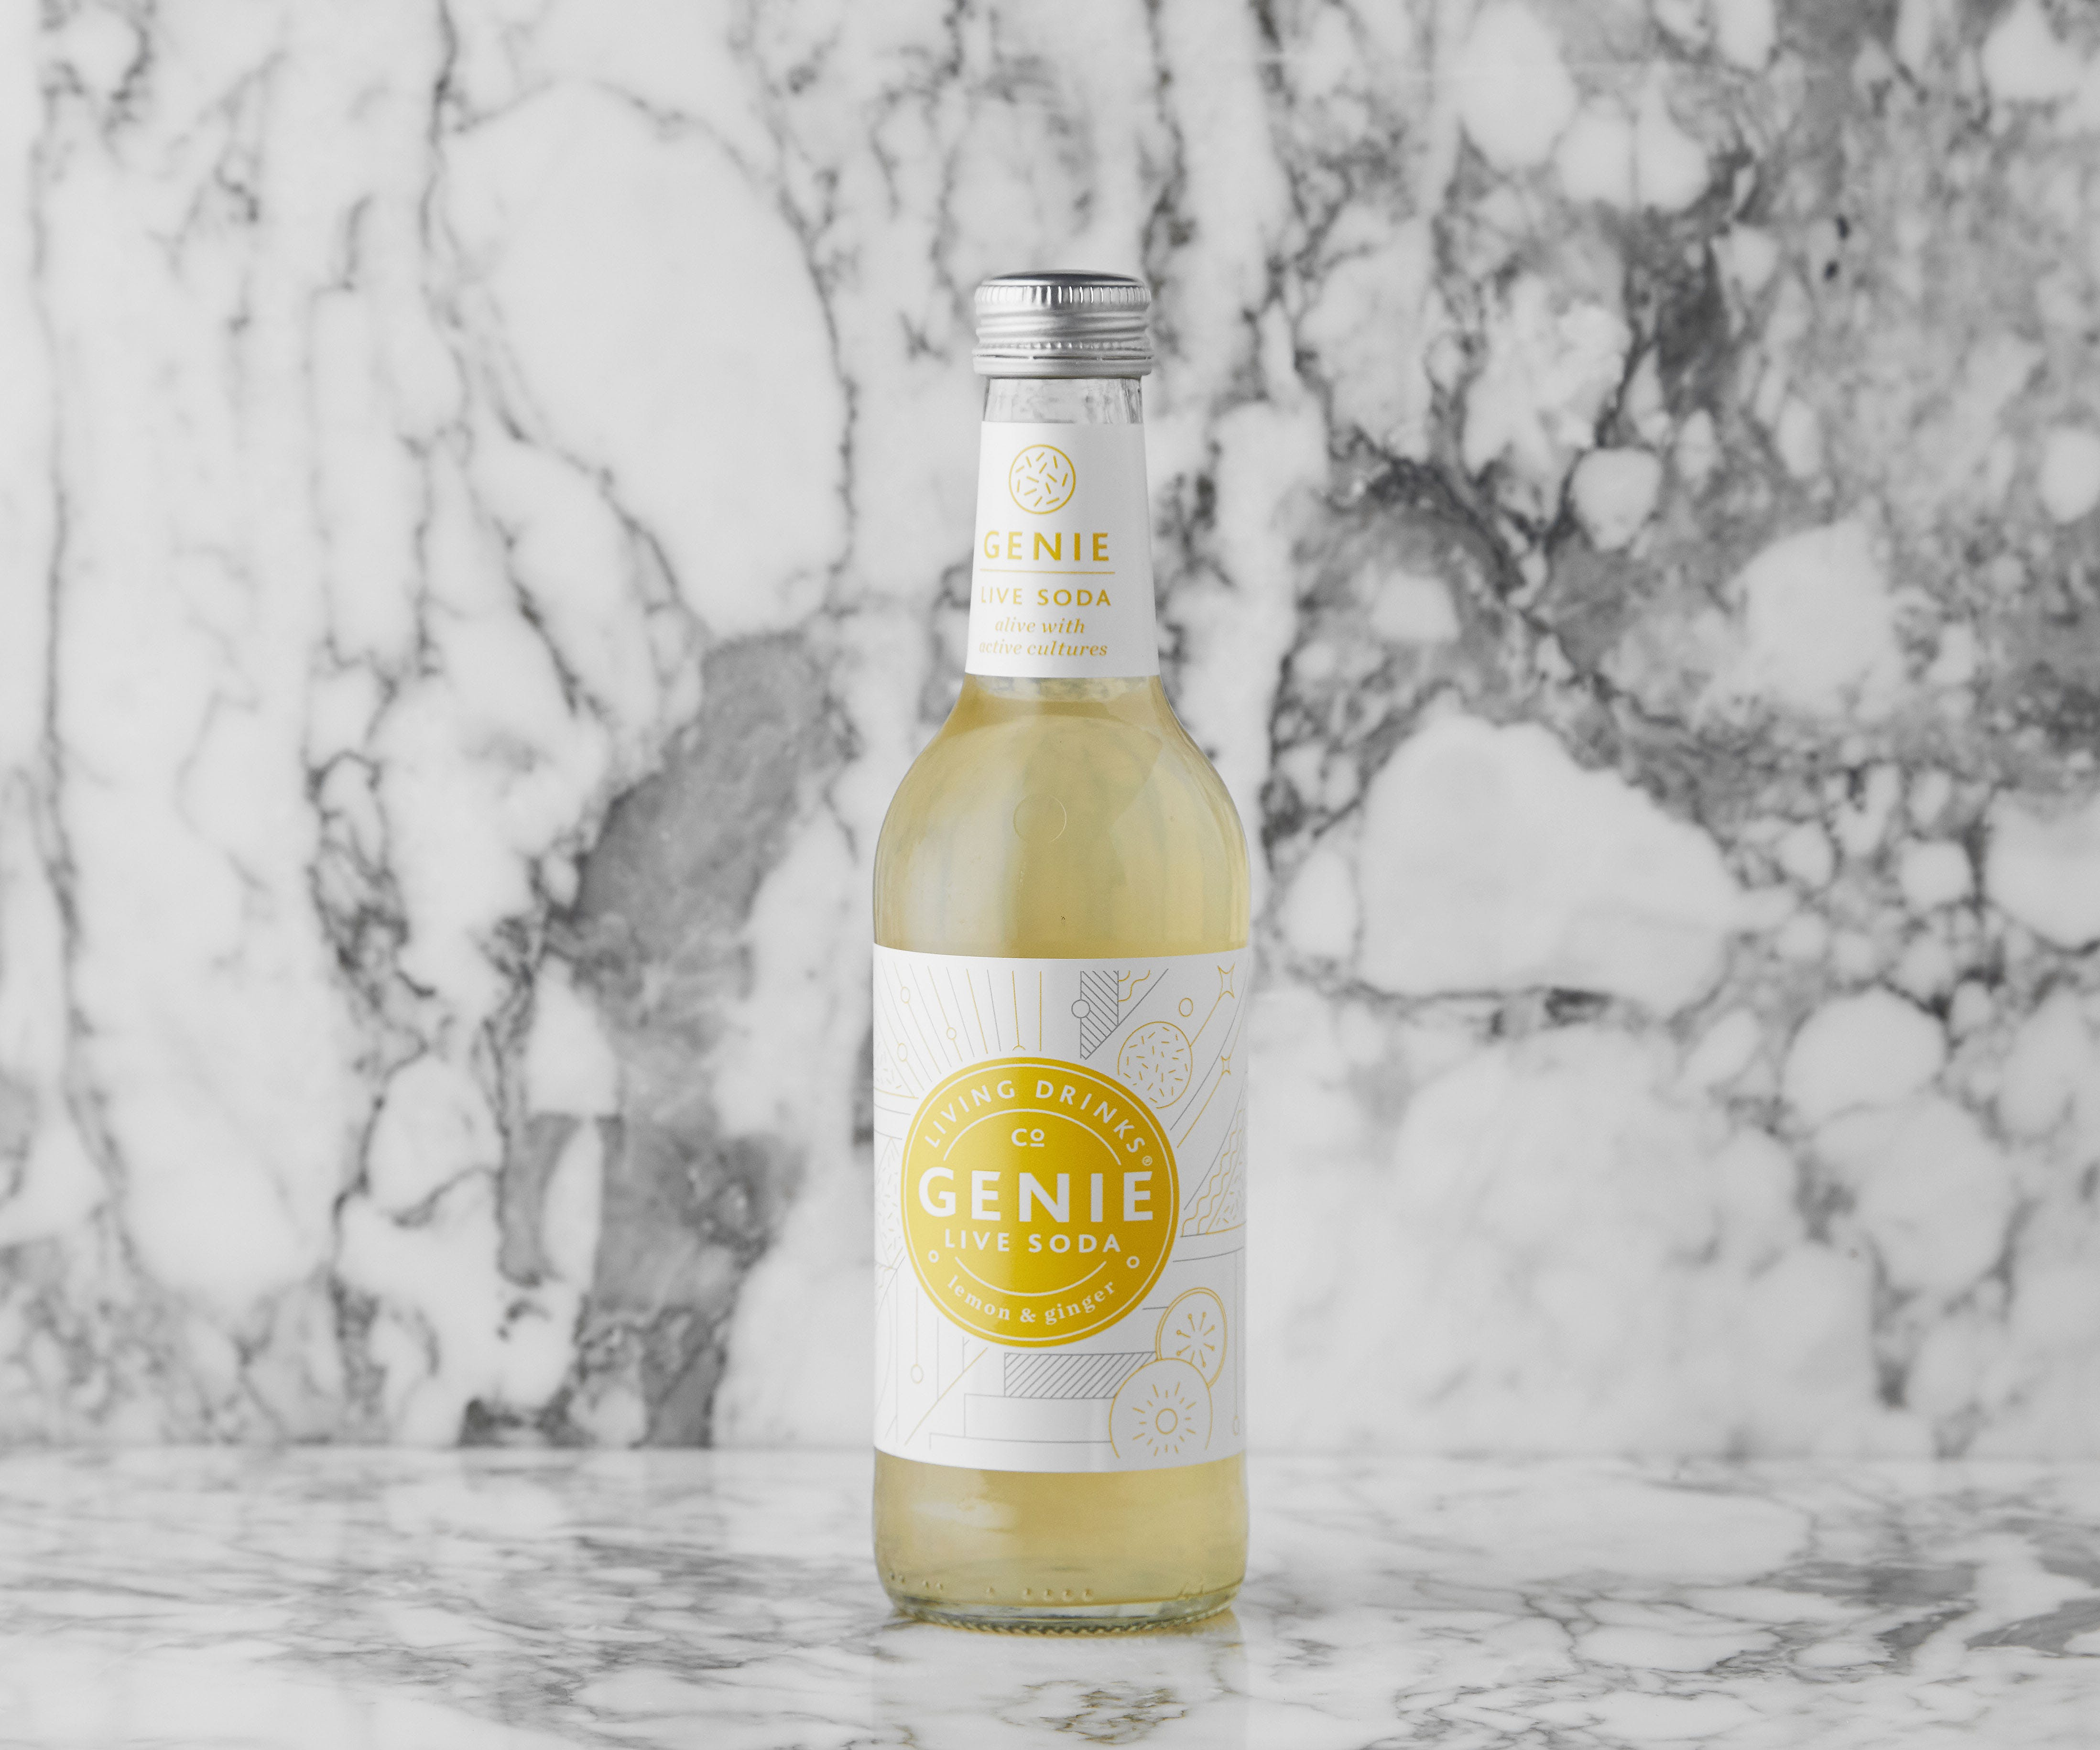 Genie Live Soda, Lemon & Ginger